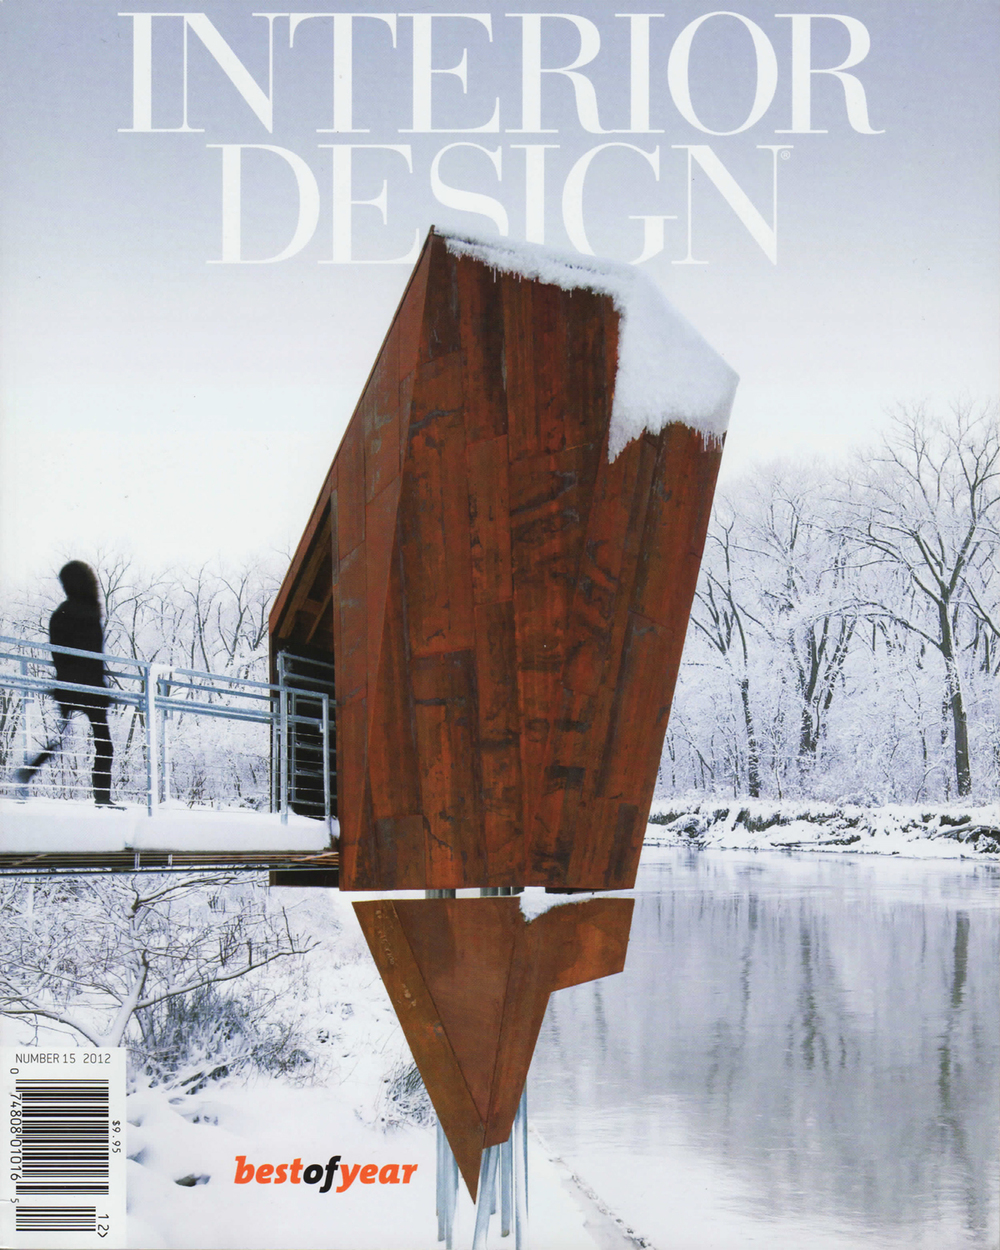 Interior design new cover.jpg